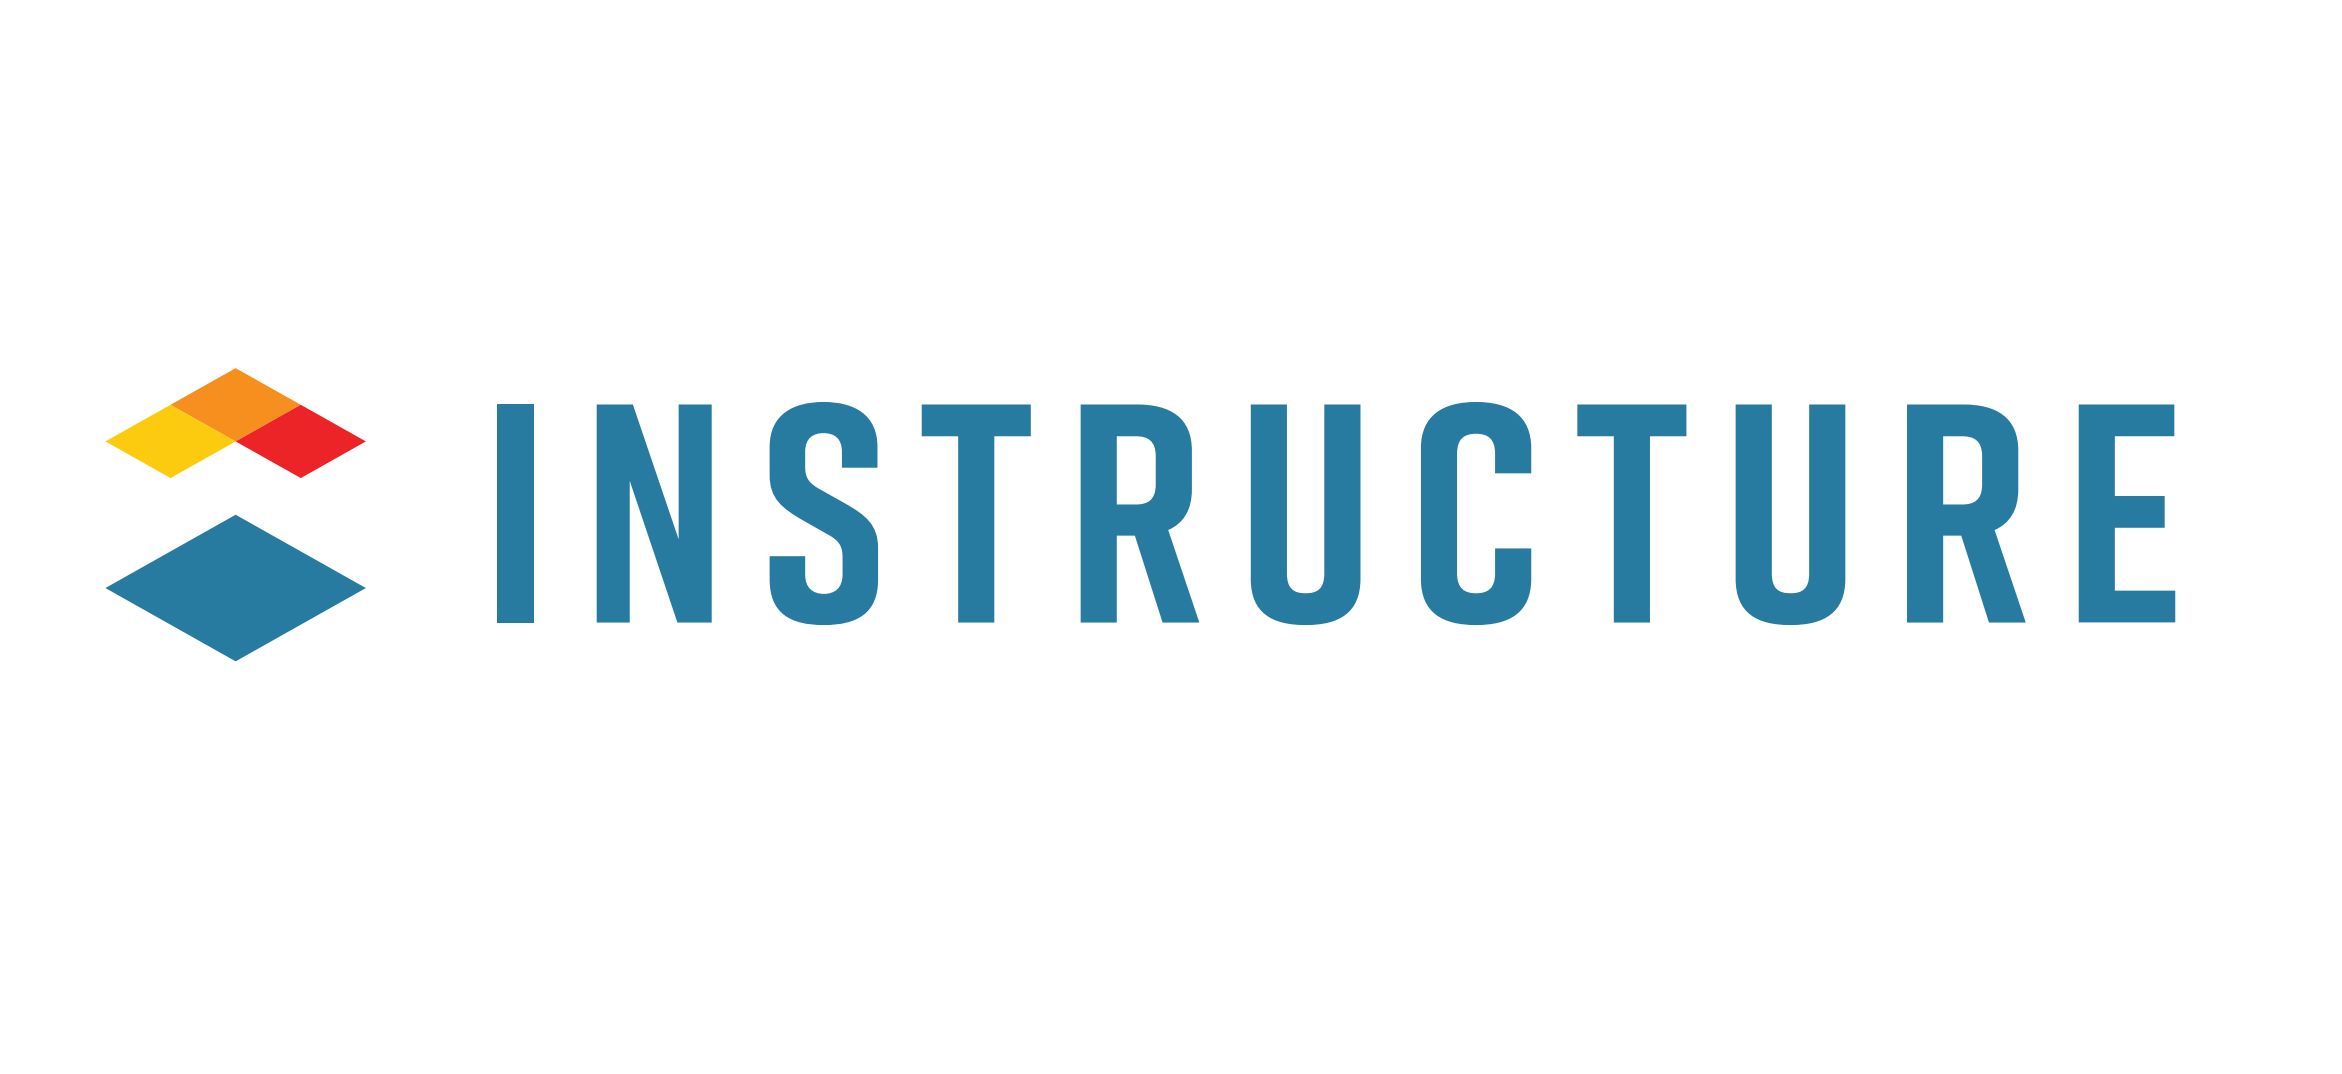 New Instructure logo